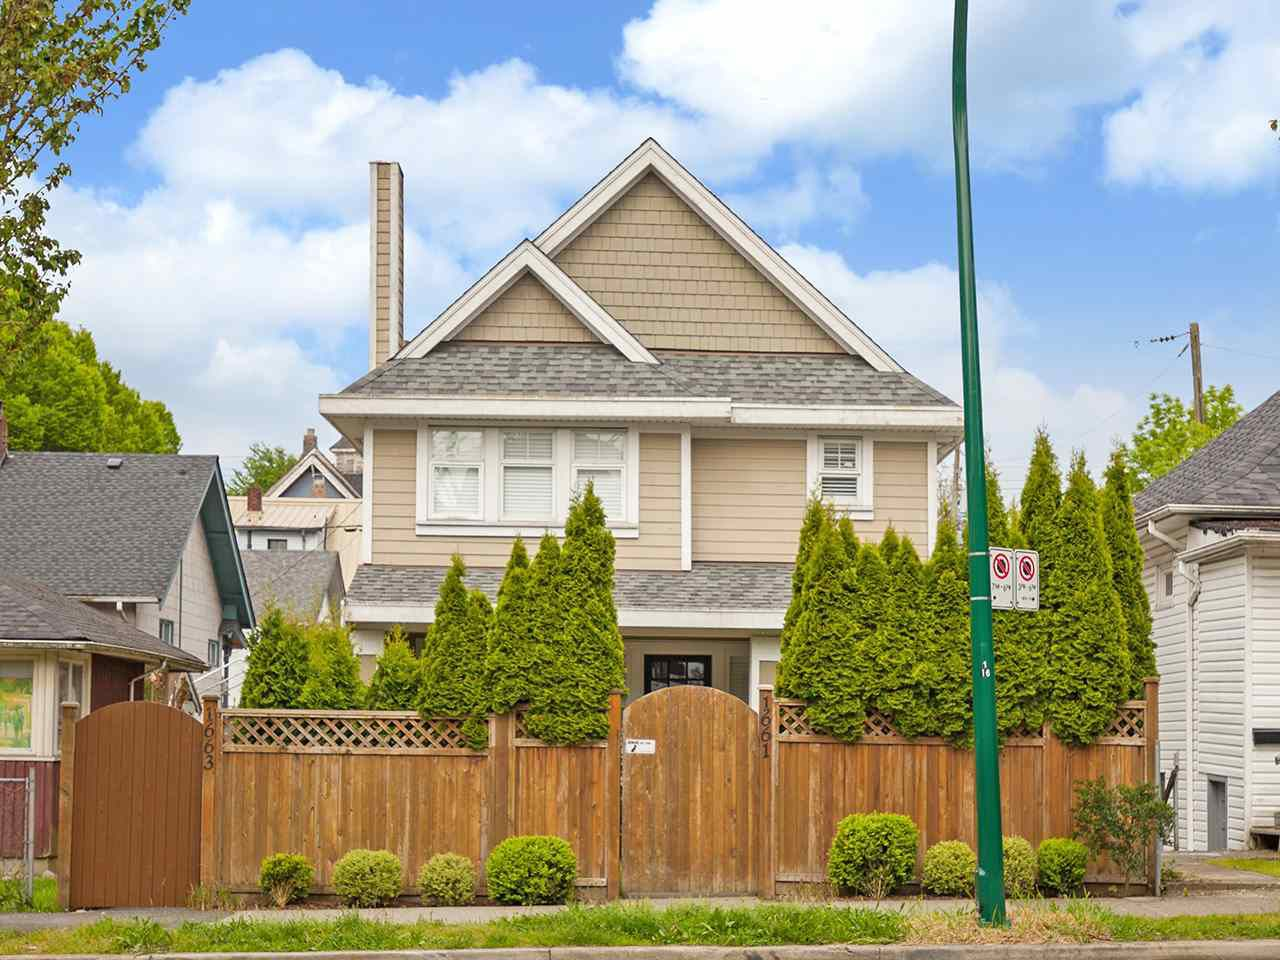 Main Photo: 1663 VICTORIA Drive in Vancouver: Grandview VE House 1/2 Duplex for sale (Vancouver East)  : MLS®# R2169220